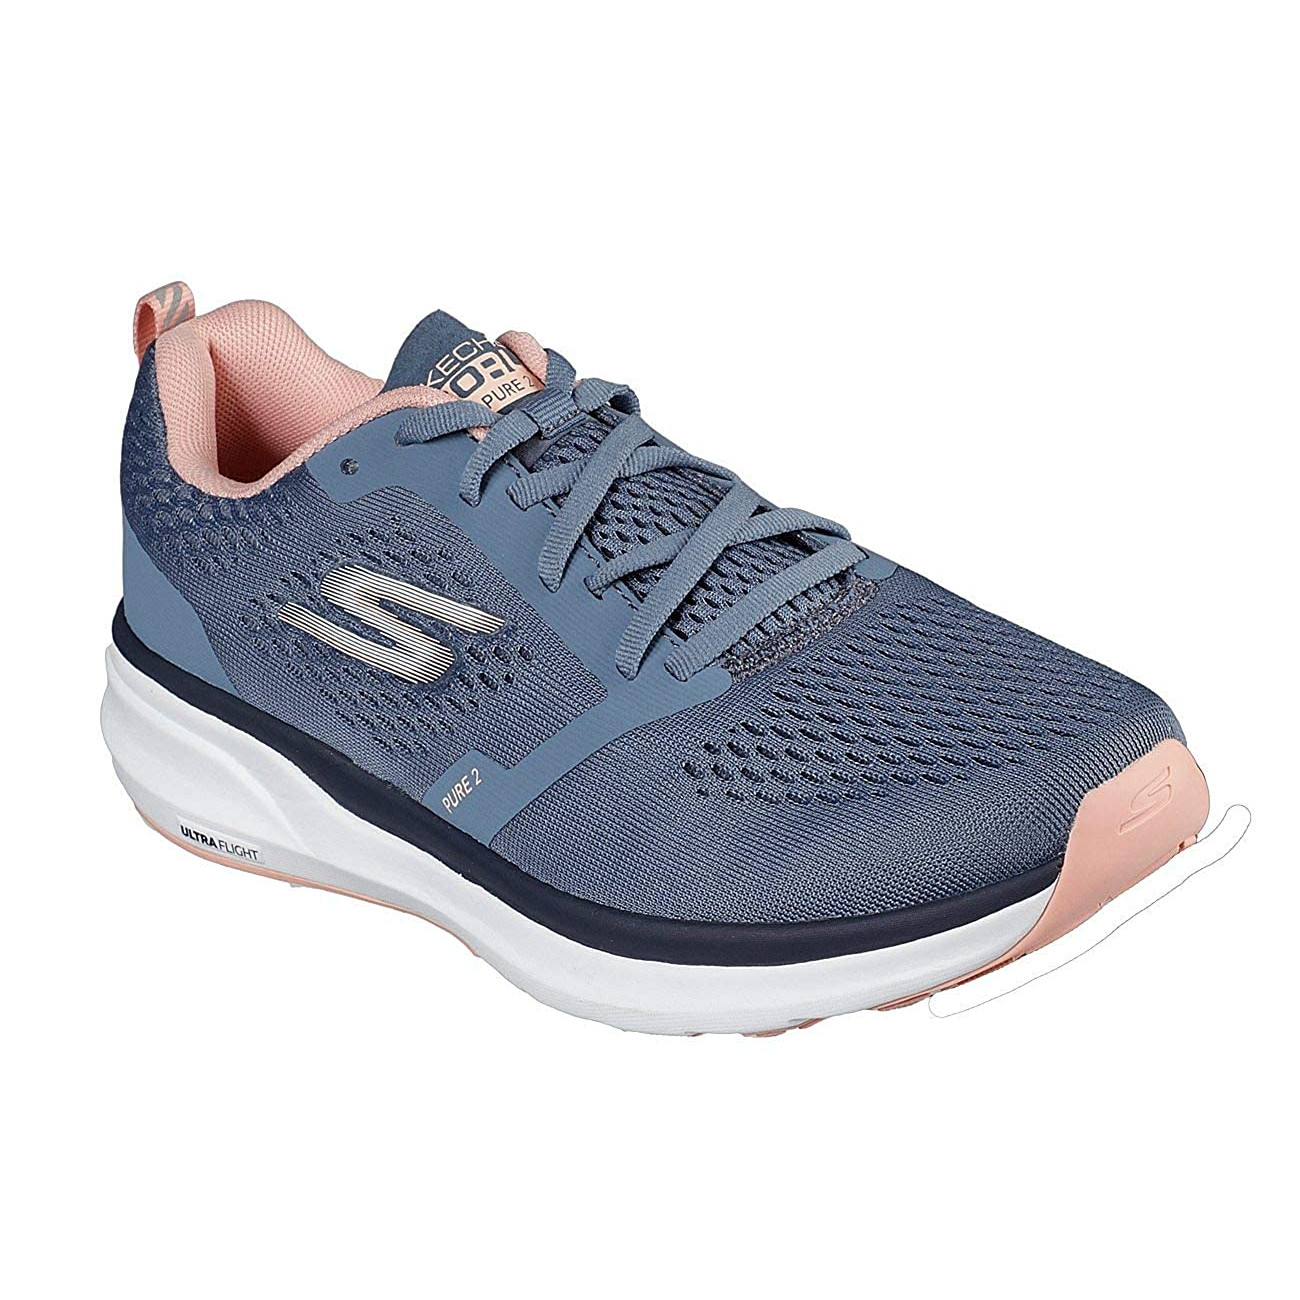 Giày thể thao Nữ Skechers Pure 2 128091